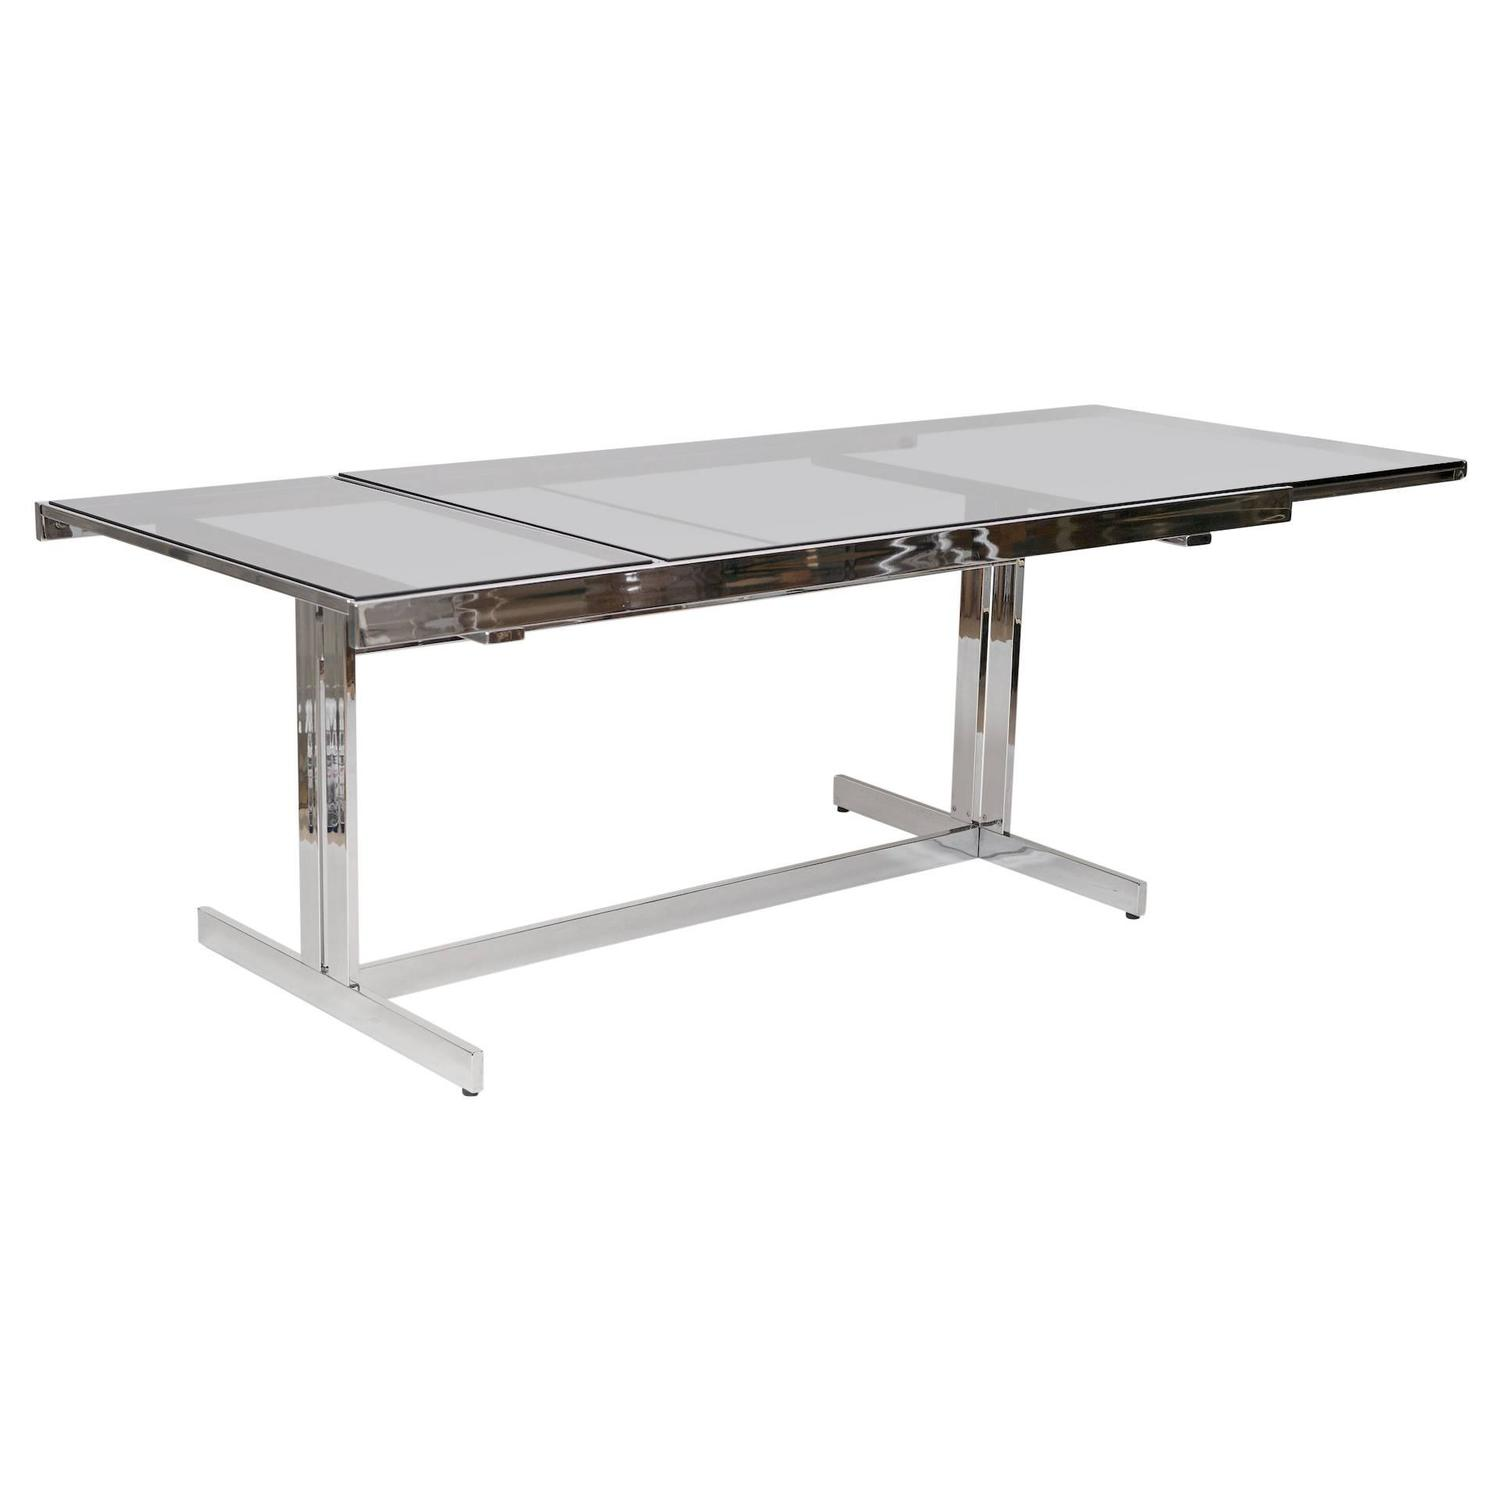 Chrome and glass extending dining table circa 1970 at 1stdibs for Glass and chrome dining table